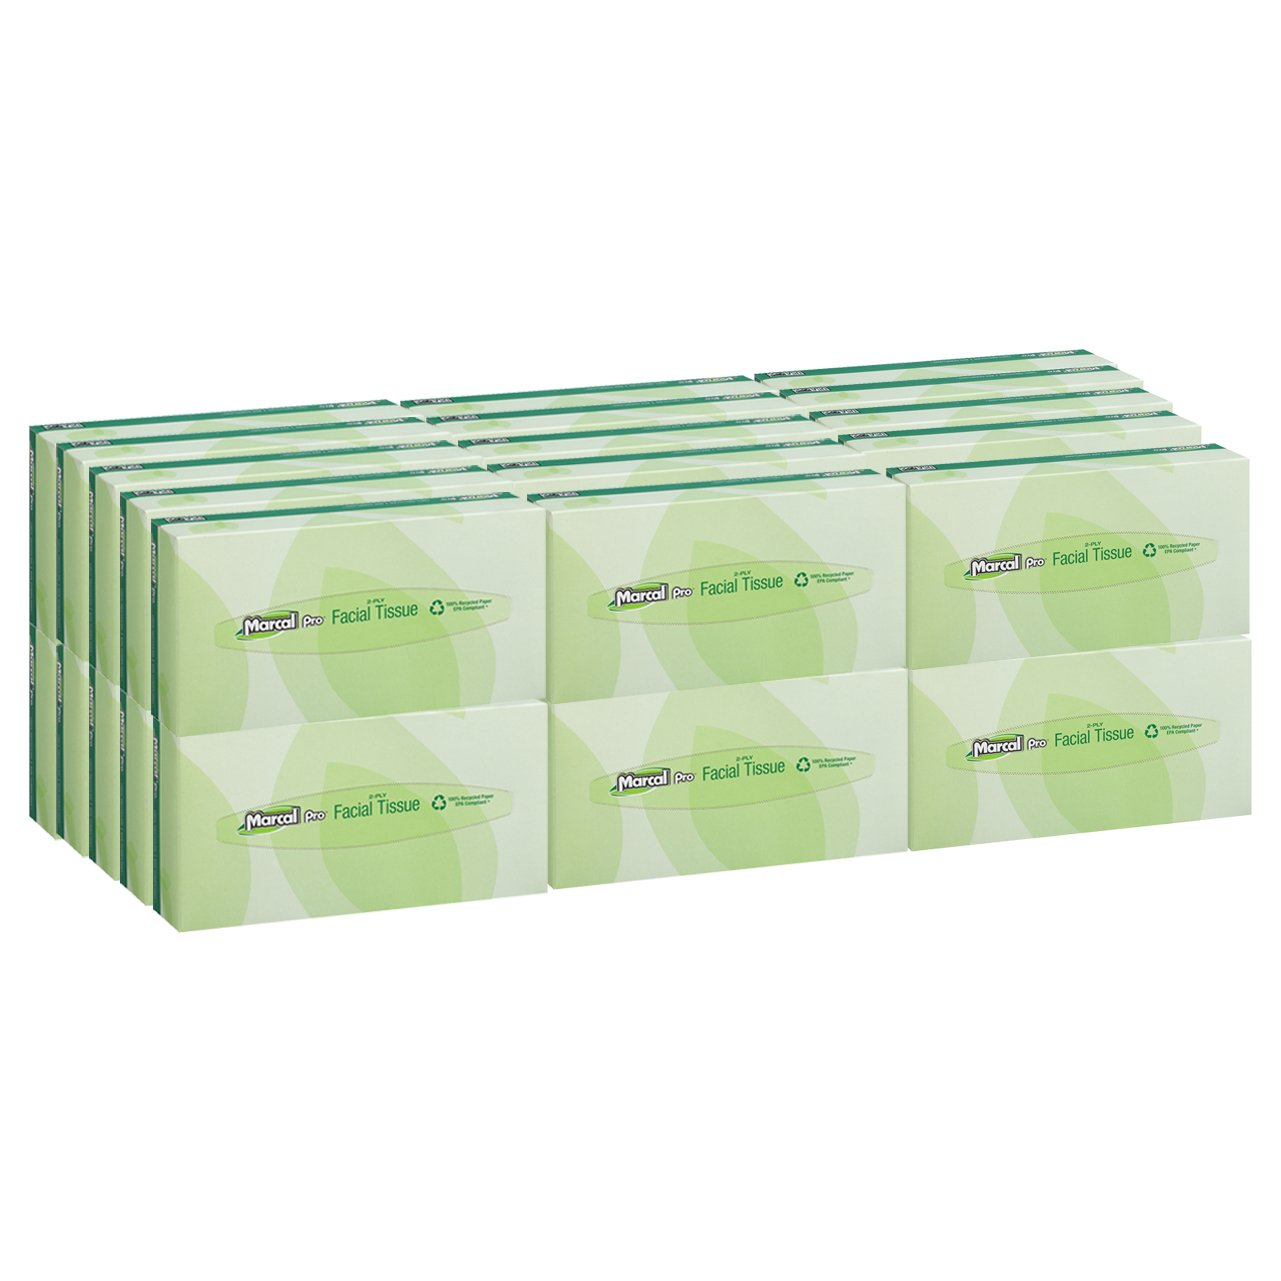 Marcal Pro Facial Tissue - 100 Tissues in a Flat Tissue Box - 100% Recycled Soft Tissue Paper - 30 Boxes Per Case 02930